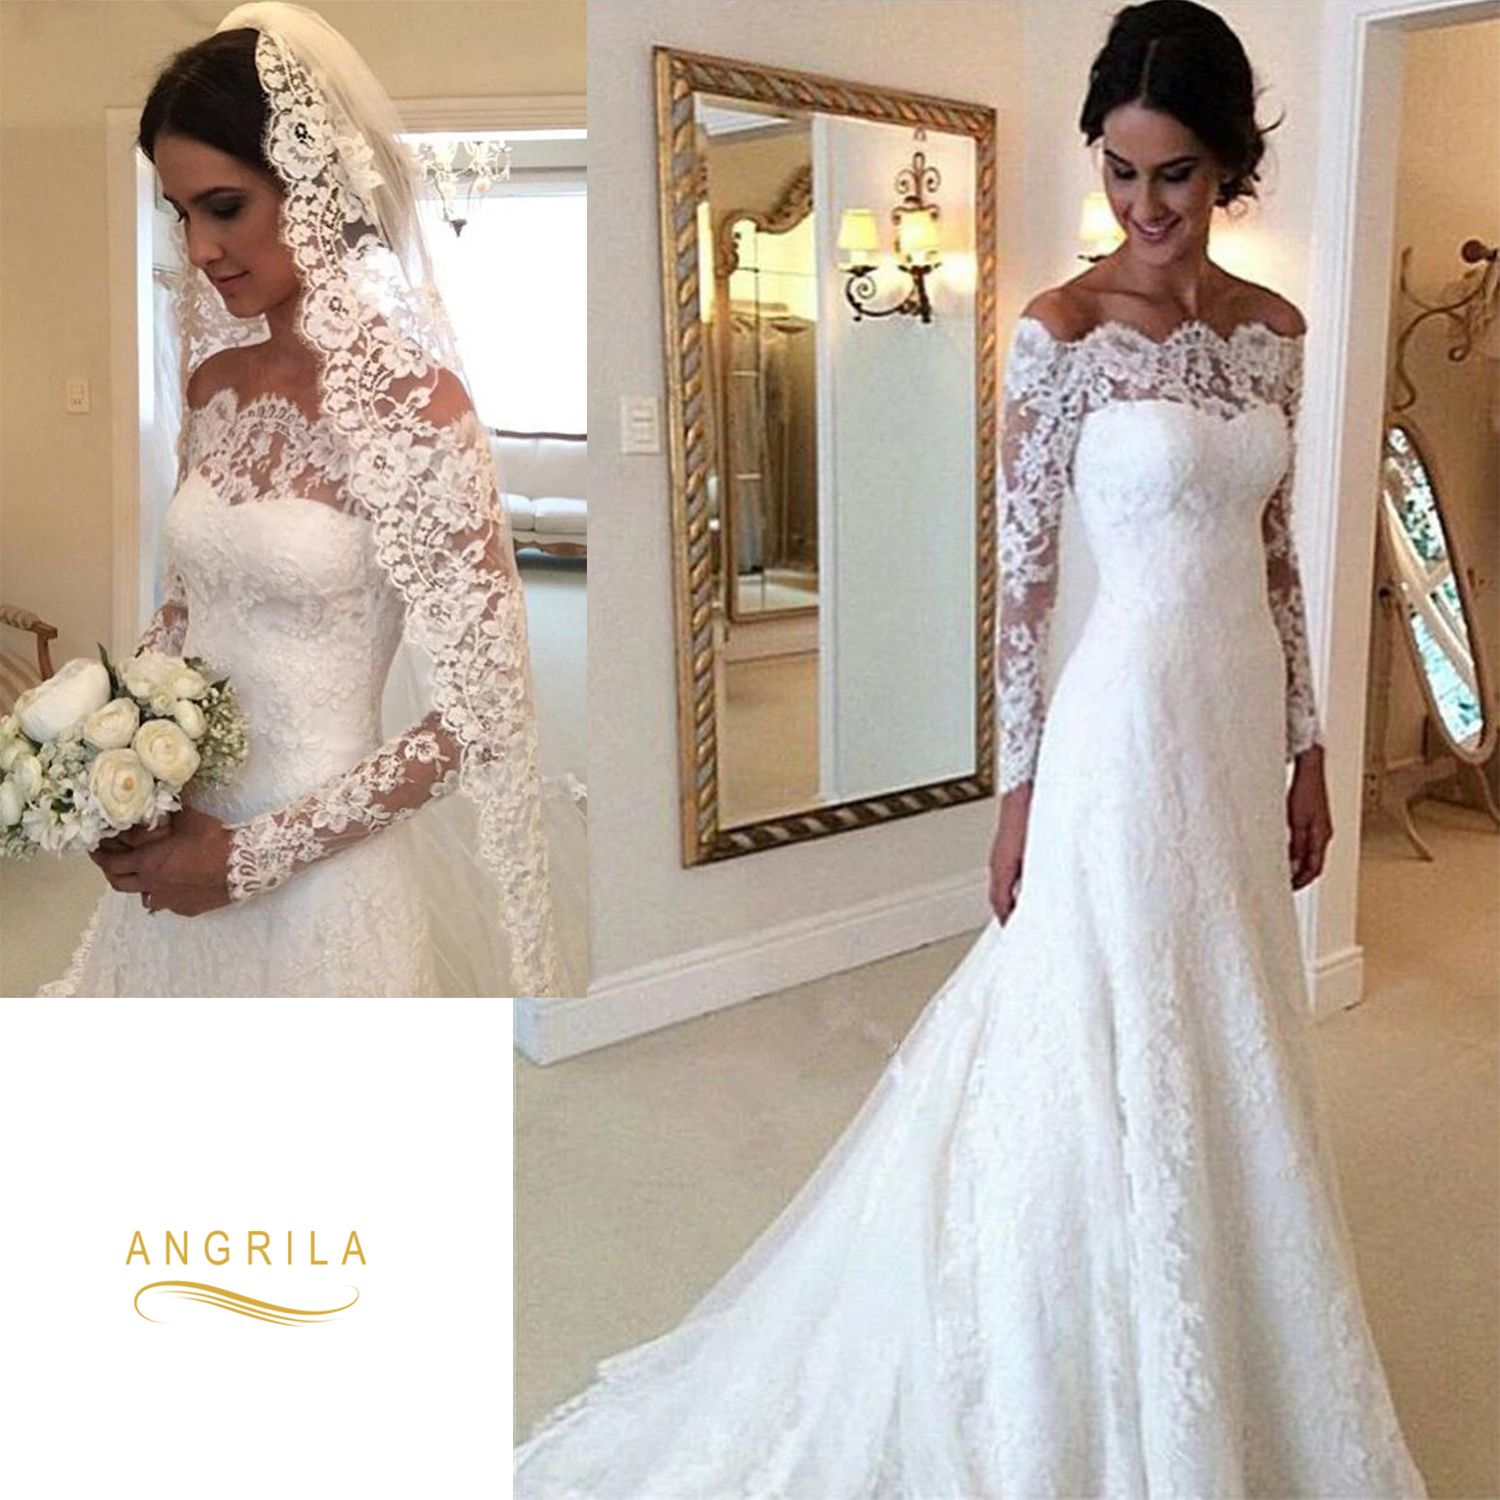 Off The Shoulder Full Long Sleeves Lace Bridal Wedding Dresses Bridal Wedding Dresses Wedding Dresses Wedding Dress Long Sleeve [ 1500 x 1500 Pixel ]